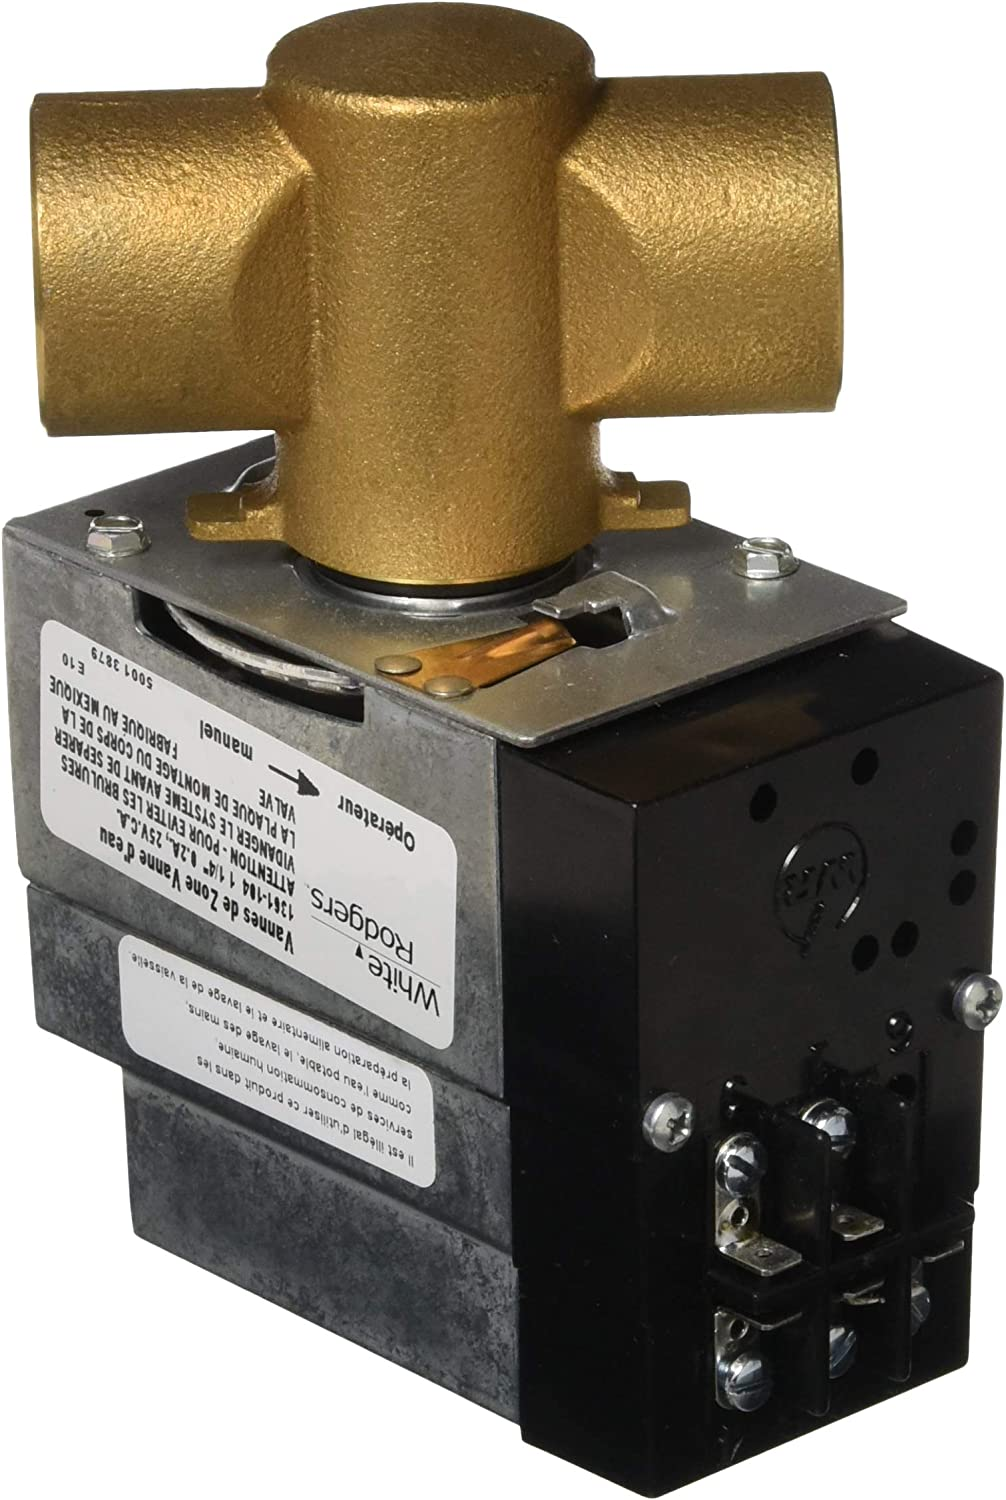 Emerson F19-0104 Motor Assembly for 2-Wire Zone Valves